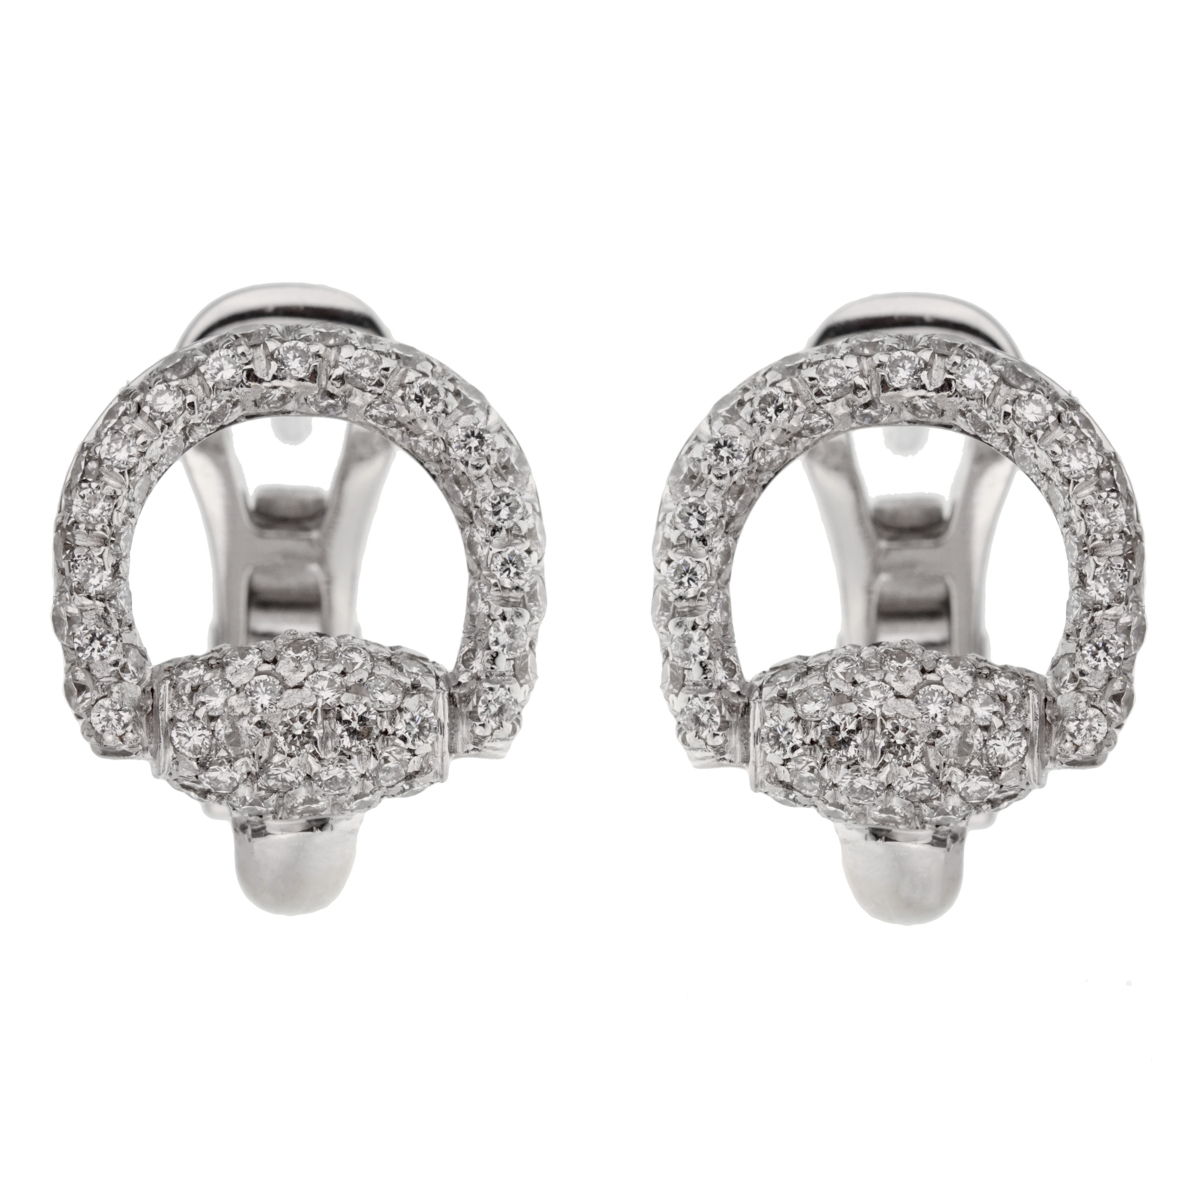 Gucci Horsebit Diamond White Gold Earrings - Gucci Jewelry